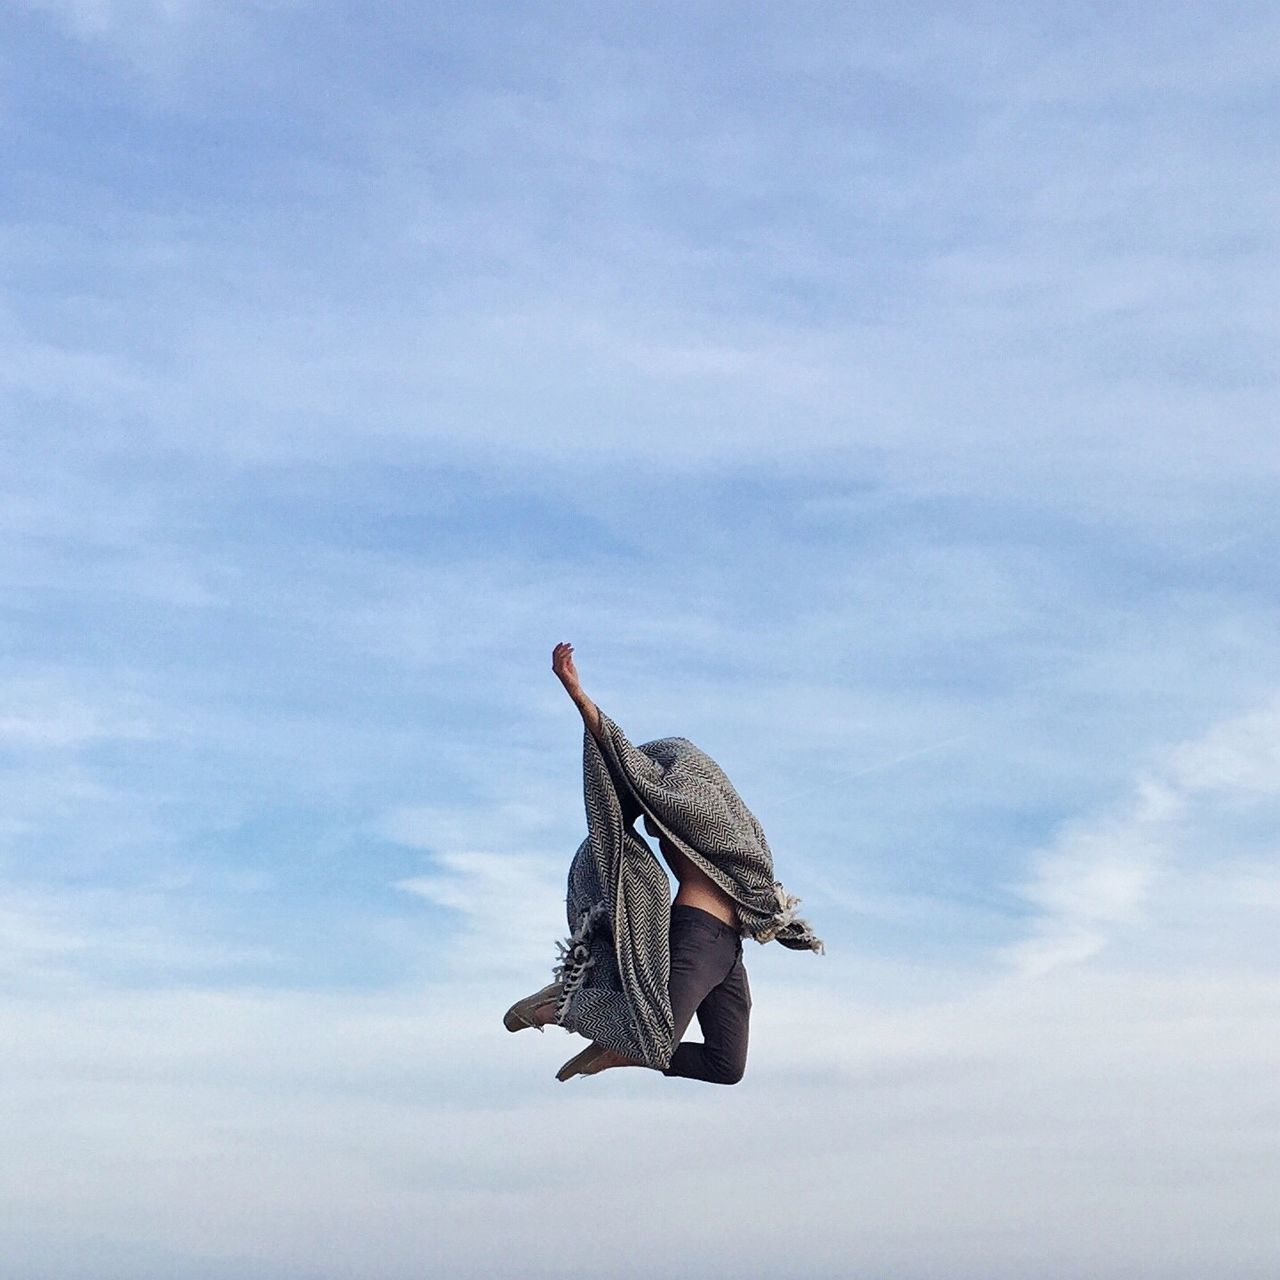 Low Angle View Of Person Covered With Scarf Jumping In Mid-Air Against Cloudy Sky